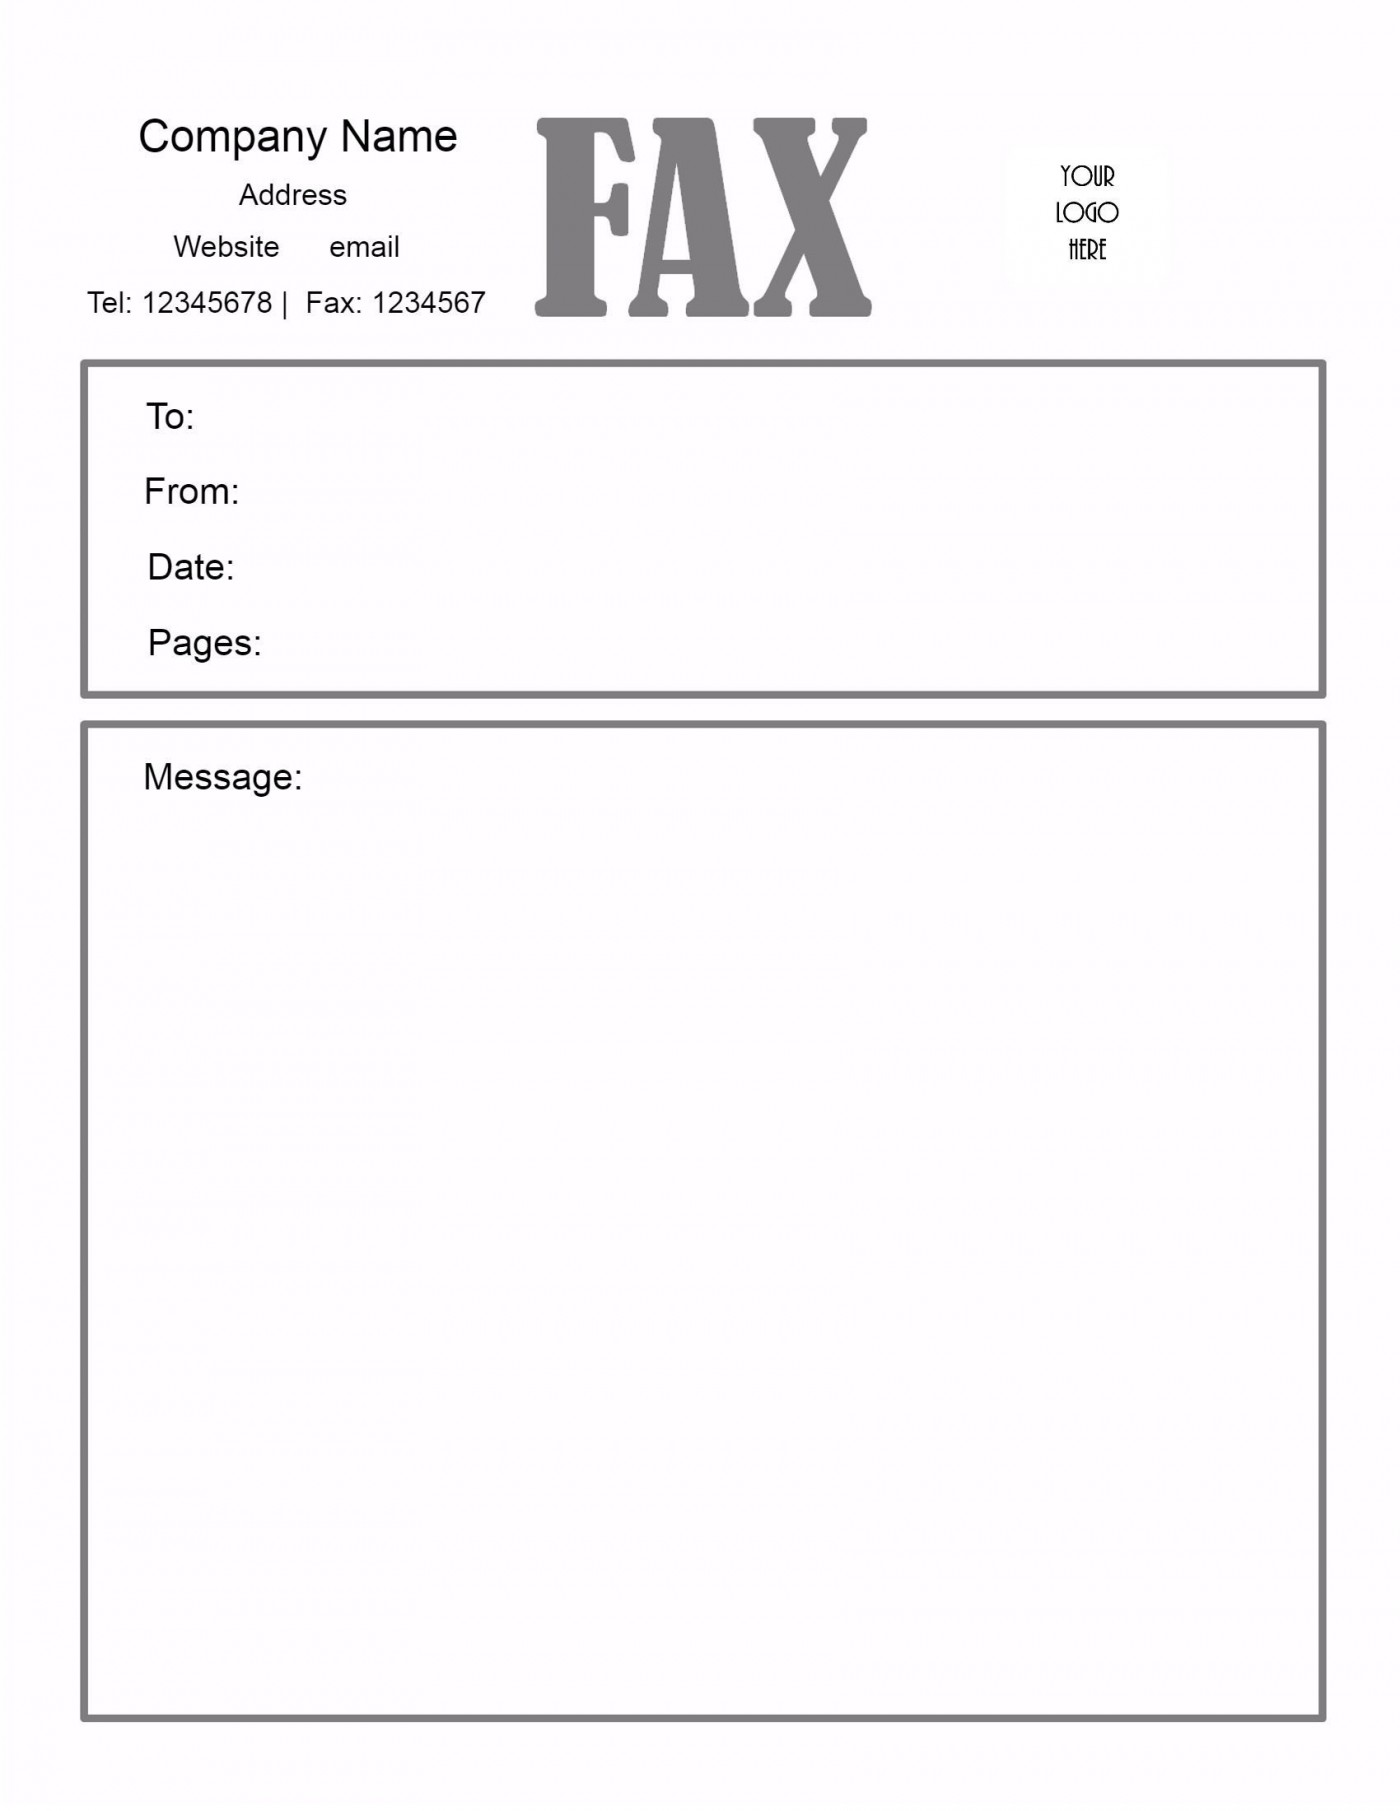 005 Awesome General Fax Cover Letter Template Inspiration  Sheet Word Confidential Example1400